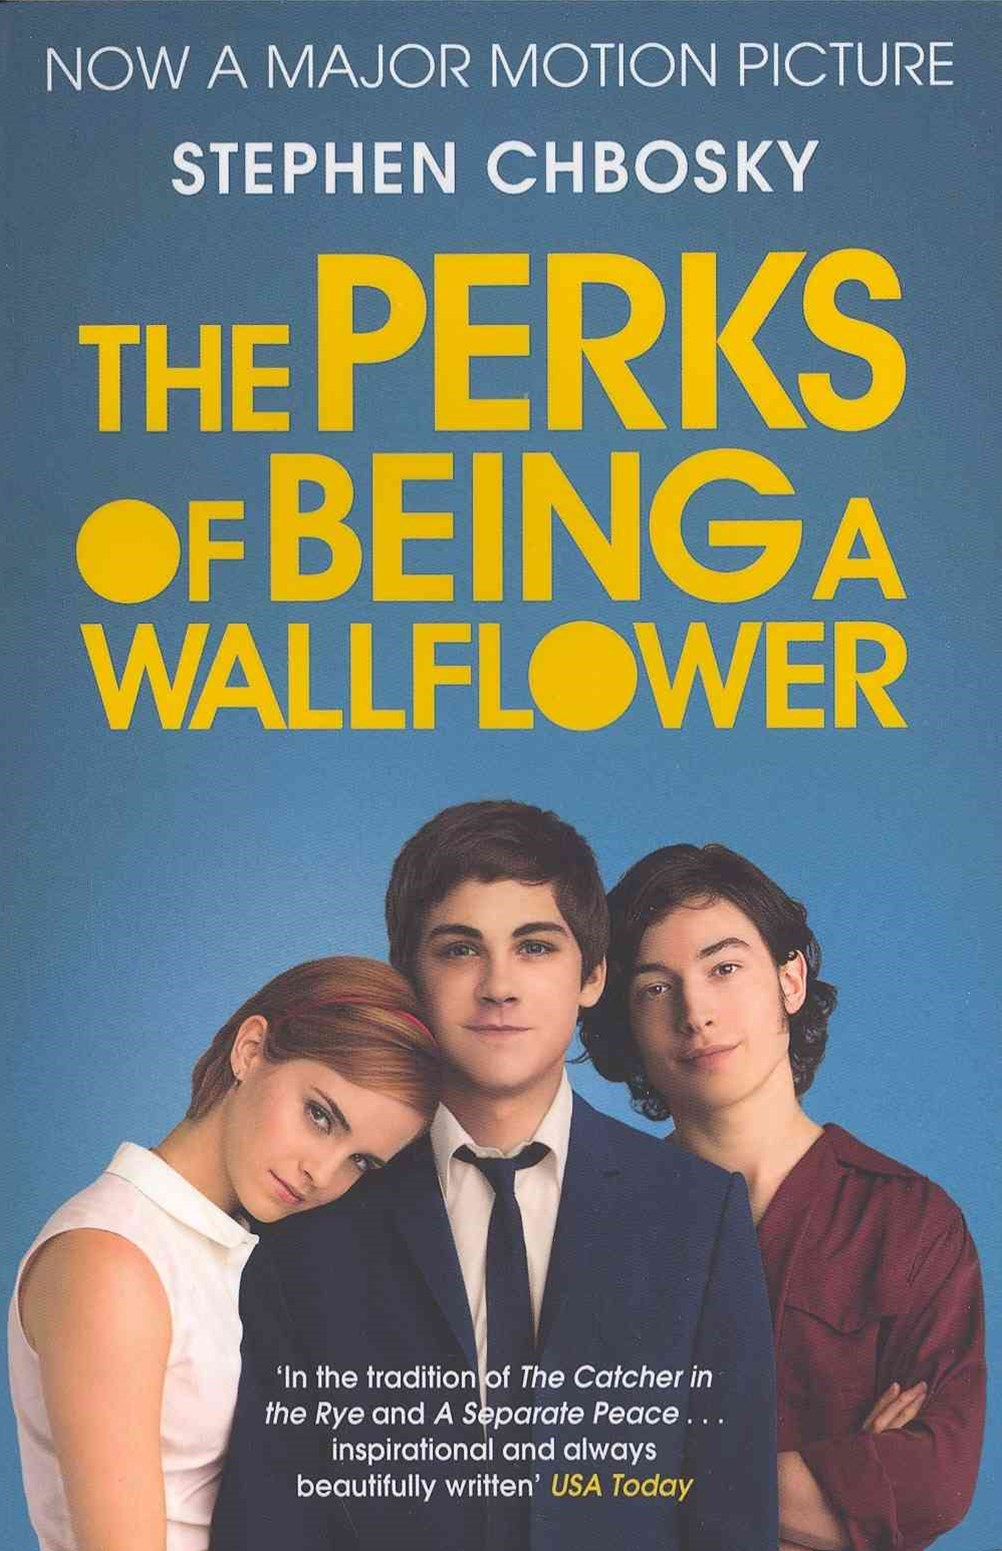 Perks of Being a Wallflower (Film tie in)